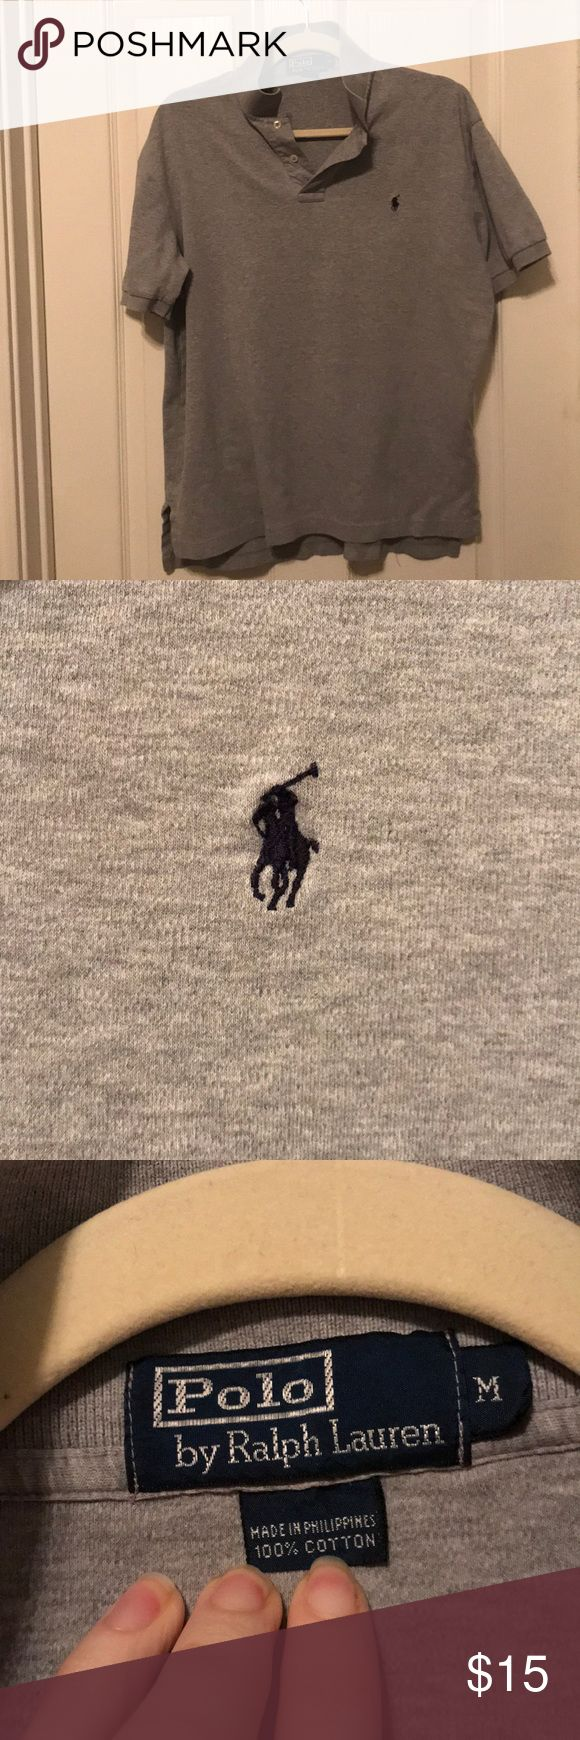 Heathered Gray Ralph Lauren Polo Collared Shirt Solid Heathered Gray, Ralph Lauren Polo collared shirt. Polo emblem monogrammed on the right side. No tears, holes, or missing buttons. Ralph Lauren Shirts Polos